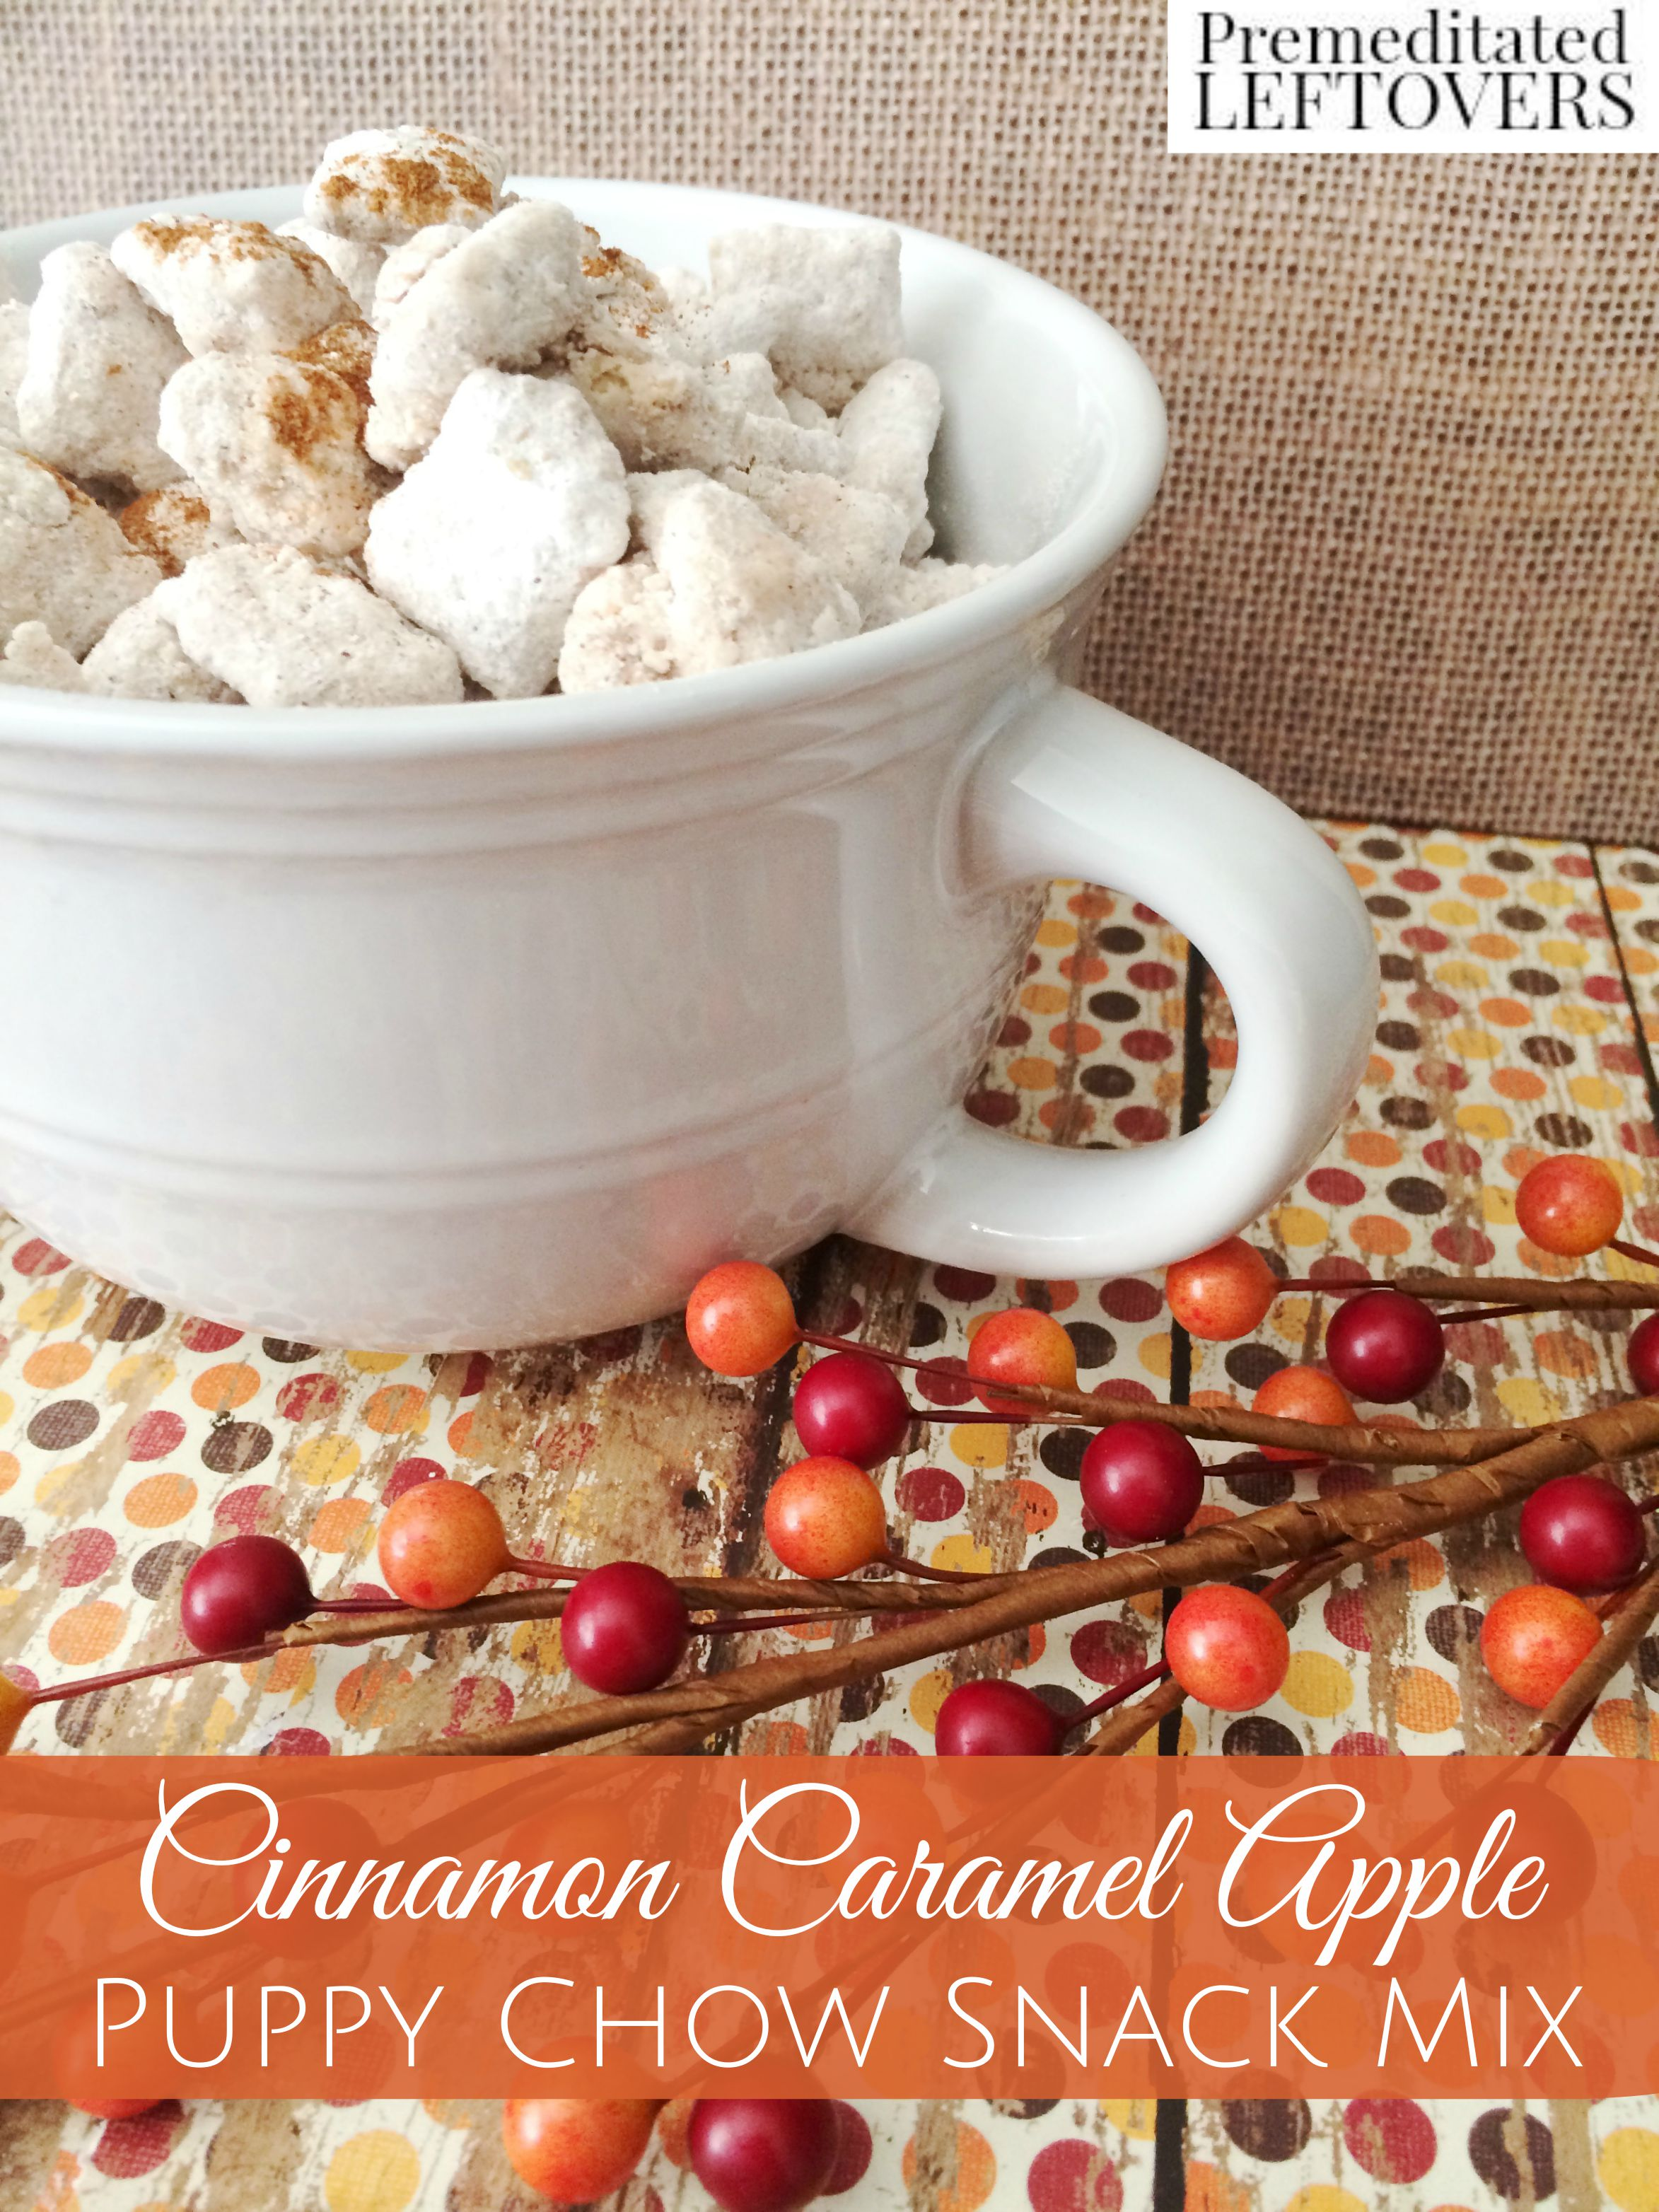 Cinnamon Caramel Apple Puppy Chow Snack Mix Recipe - Enjoy the flavors of cinnamon and caramel apple in this crunchy muddy buddy recipe. Tasty fall snack!